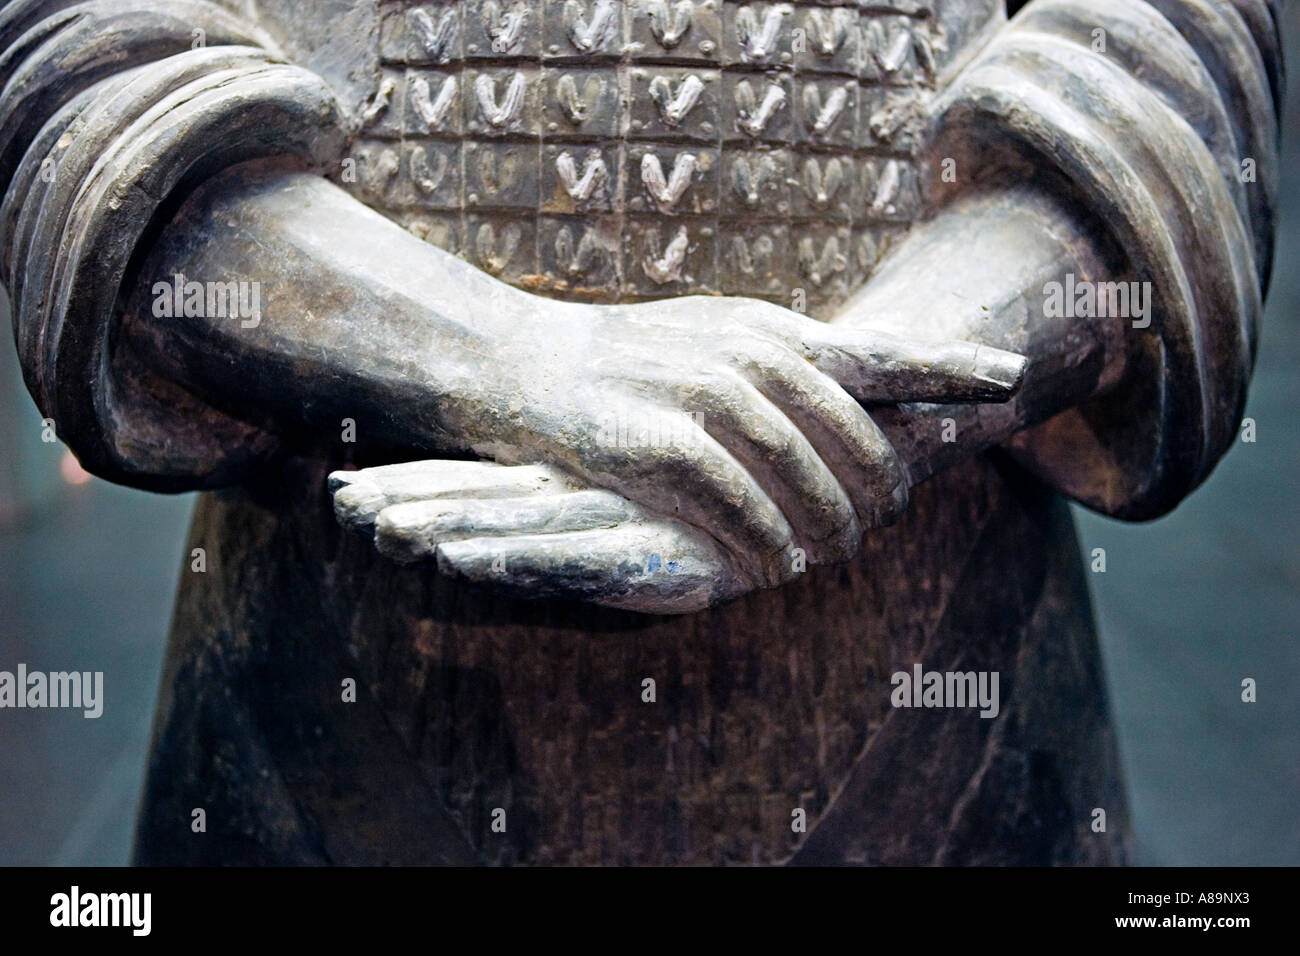 CHINA XI AN Detail of hands fingernails and chain mail armor of terracotta warrior at the Army of Terracotta Warriors - Stock Image